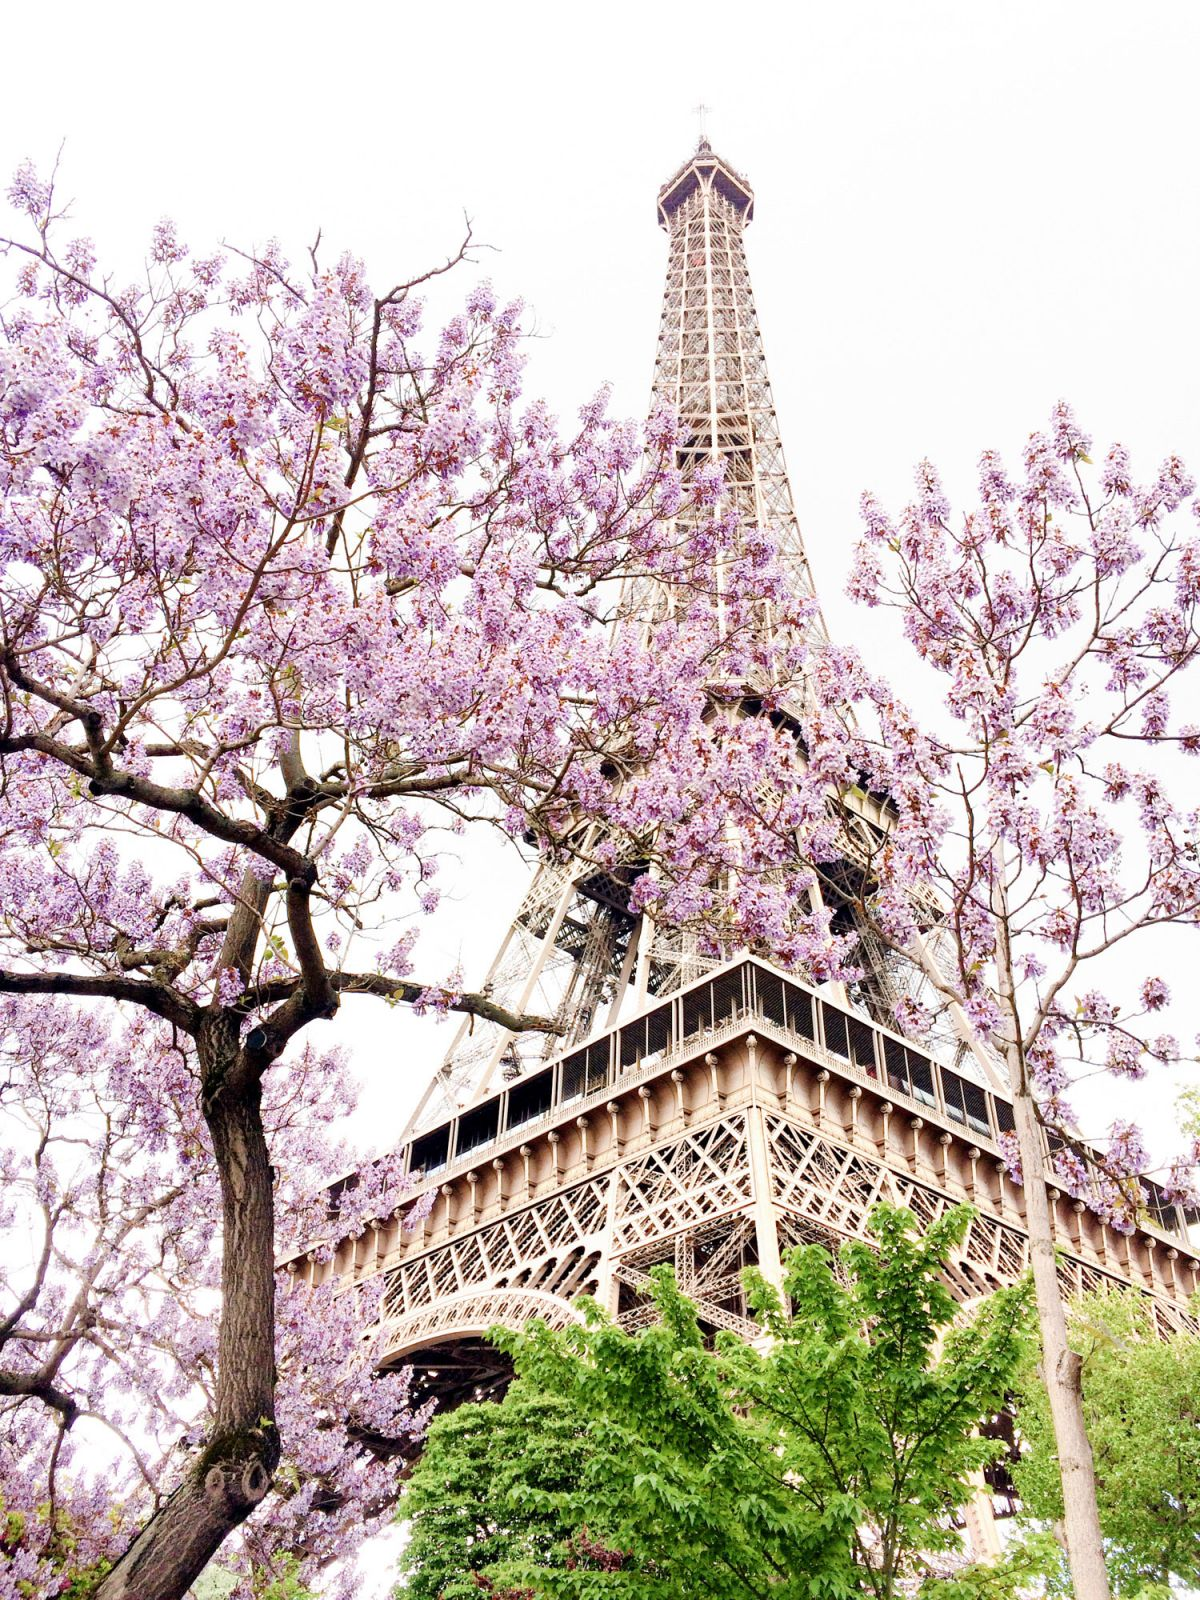 purple trees at eiffel tower, spring in paris